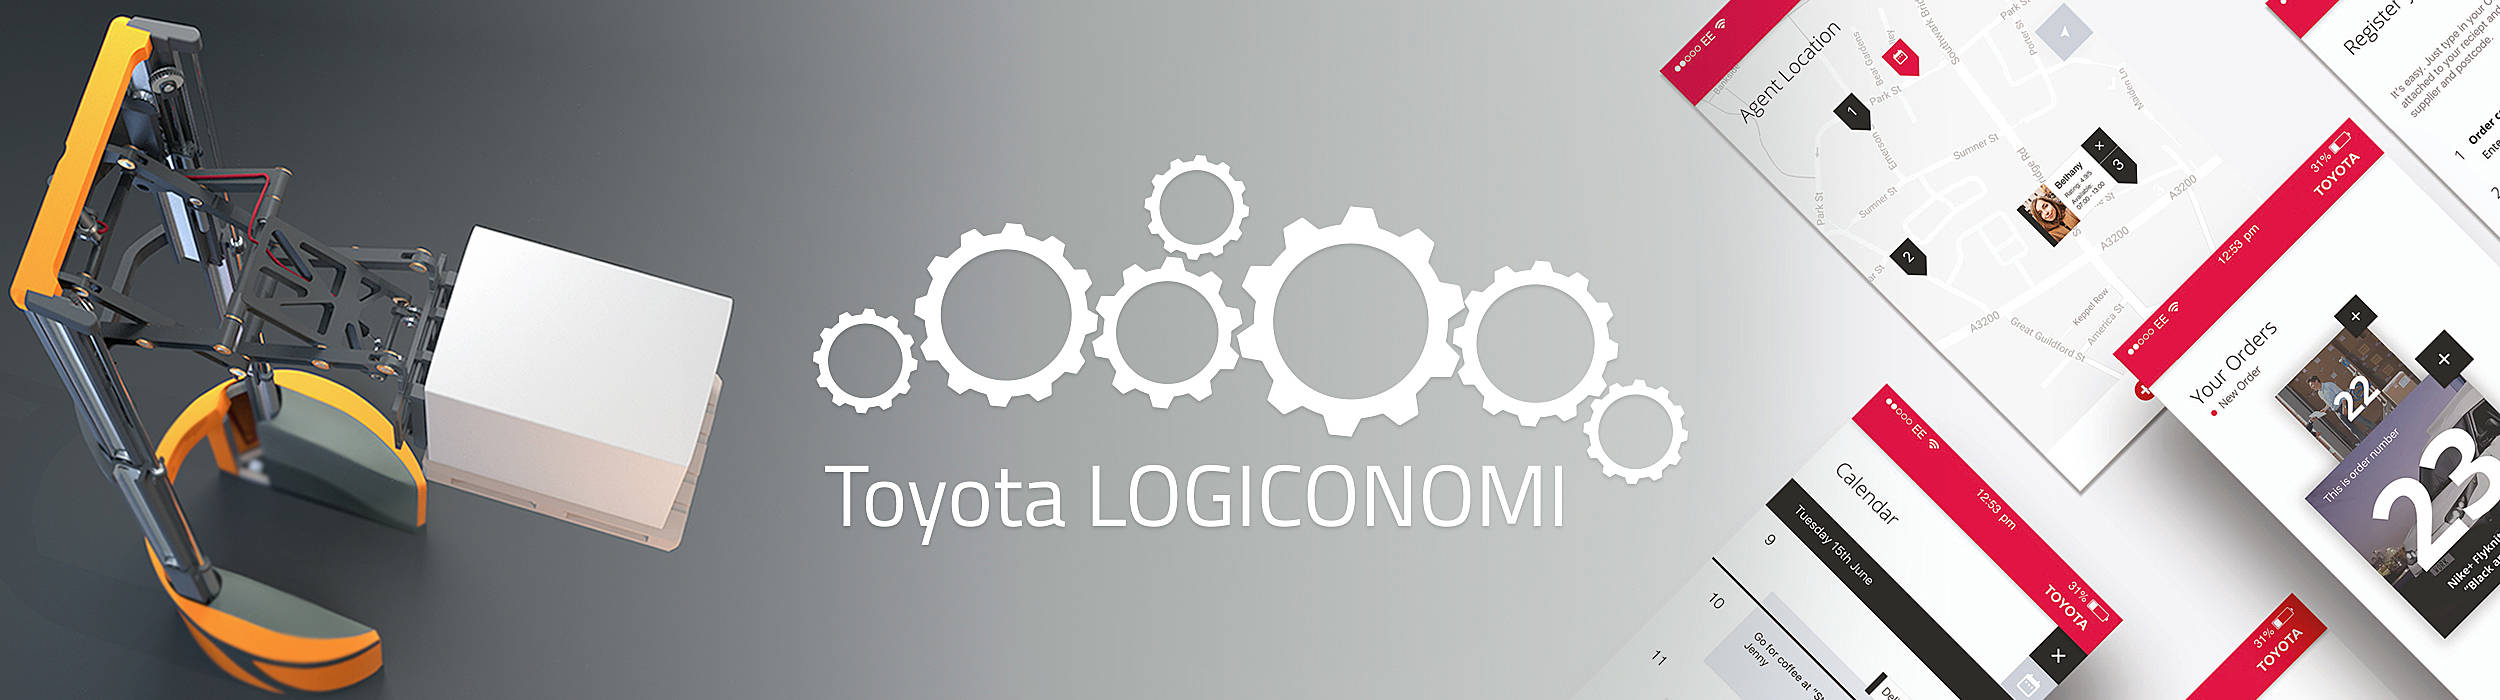 Zwycięzcy konkursu Toyota Logistic Design & Engineering